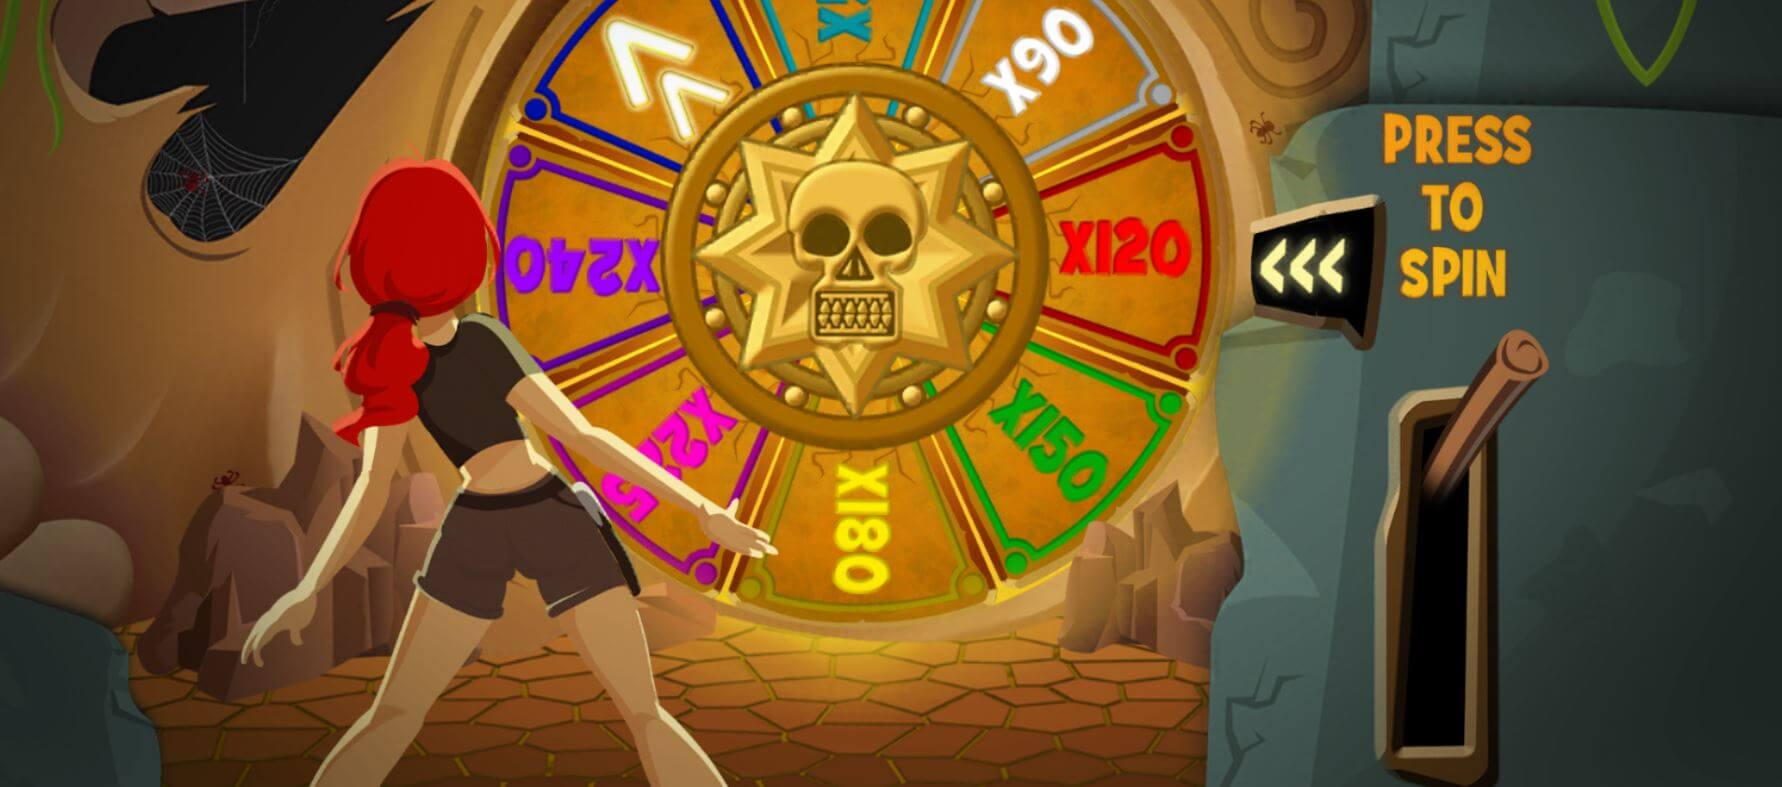 Diary of a Reel Raider! A day in the life of our latest mobile slots star.